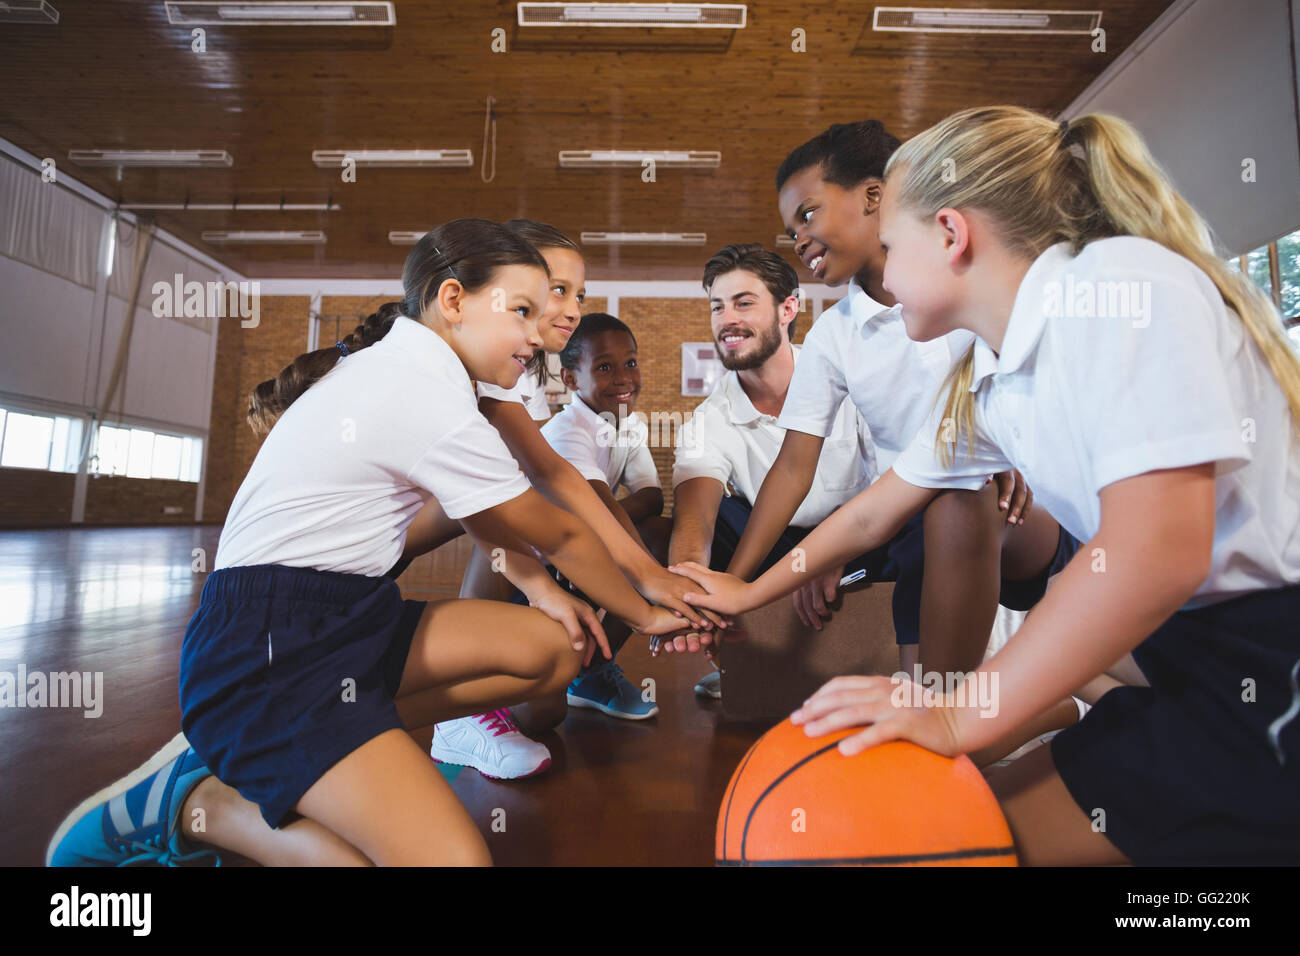 Sports teacher and school kids forming hand stack in basketball court - Stock Image